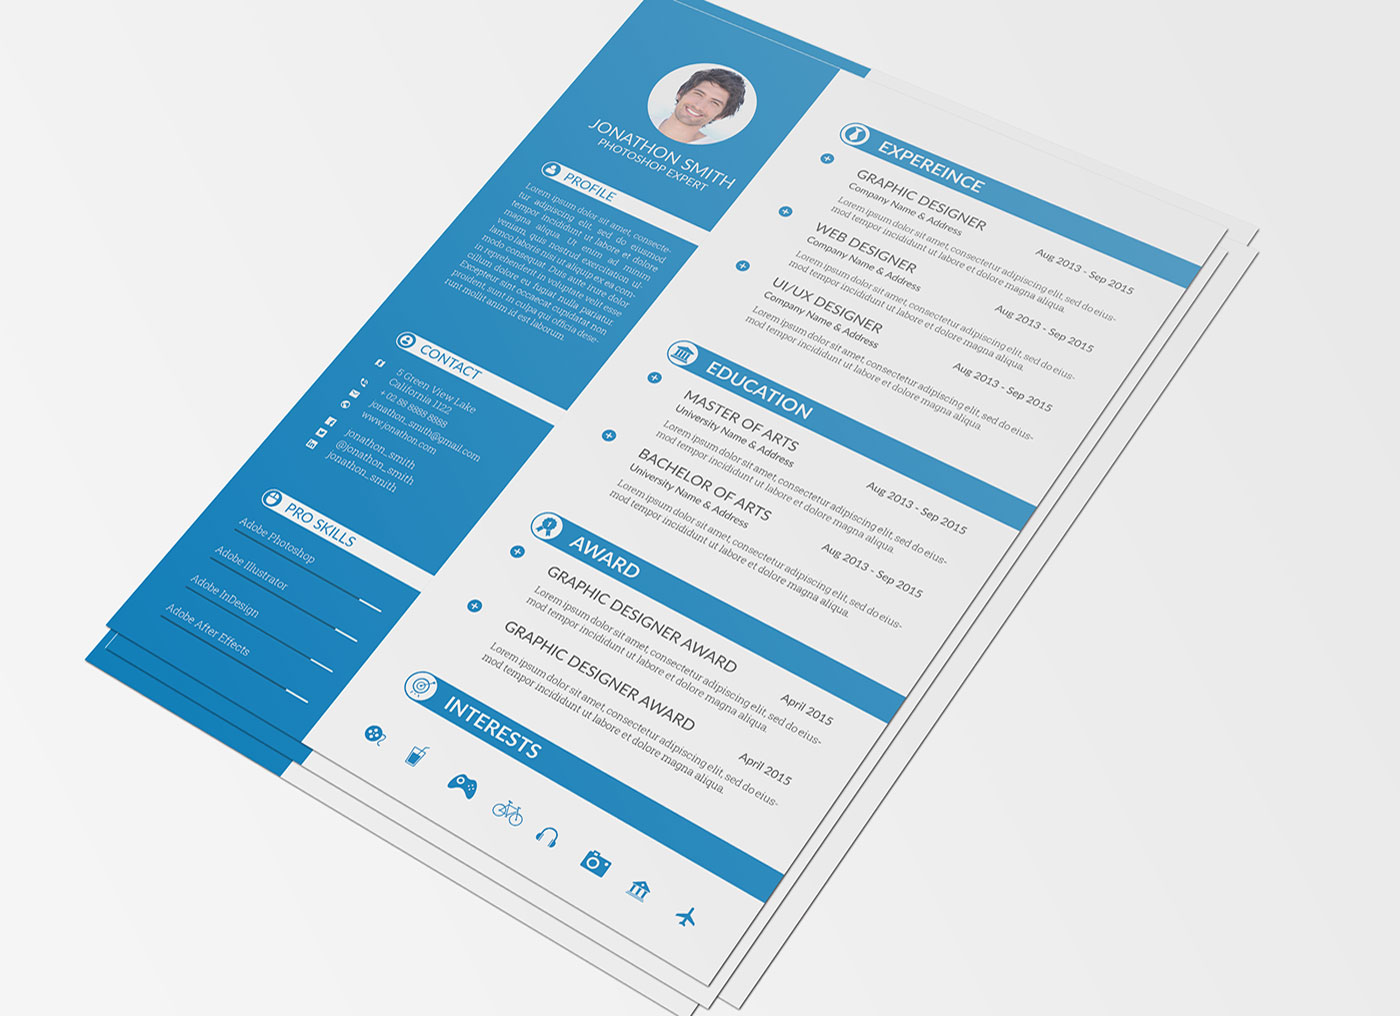 Free-PSD-Resume-CV-&-Cover-Letter-Template-for-UI-and-UX-Designer (4)